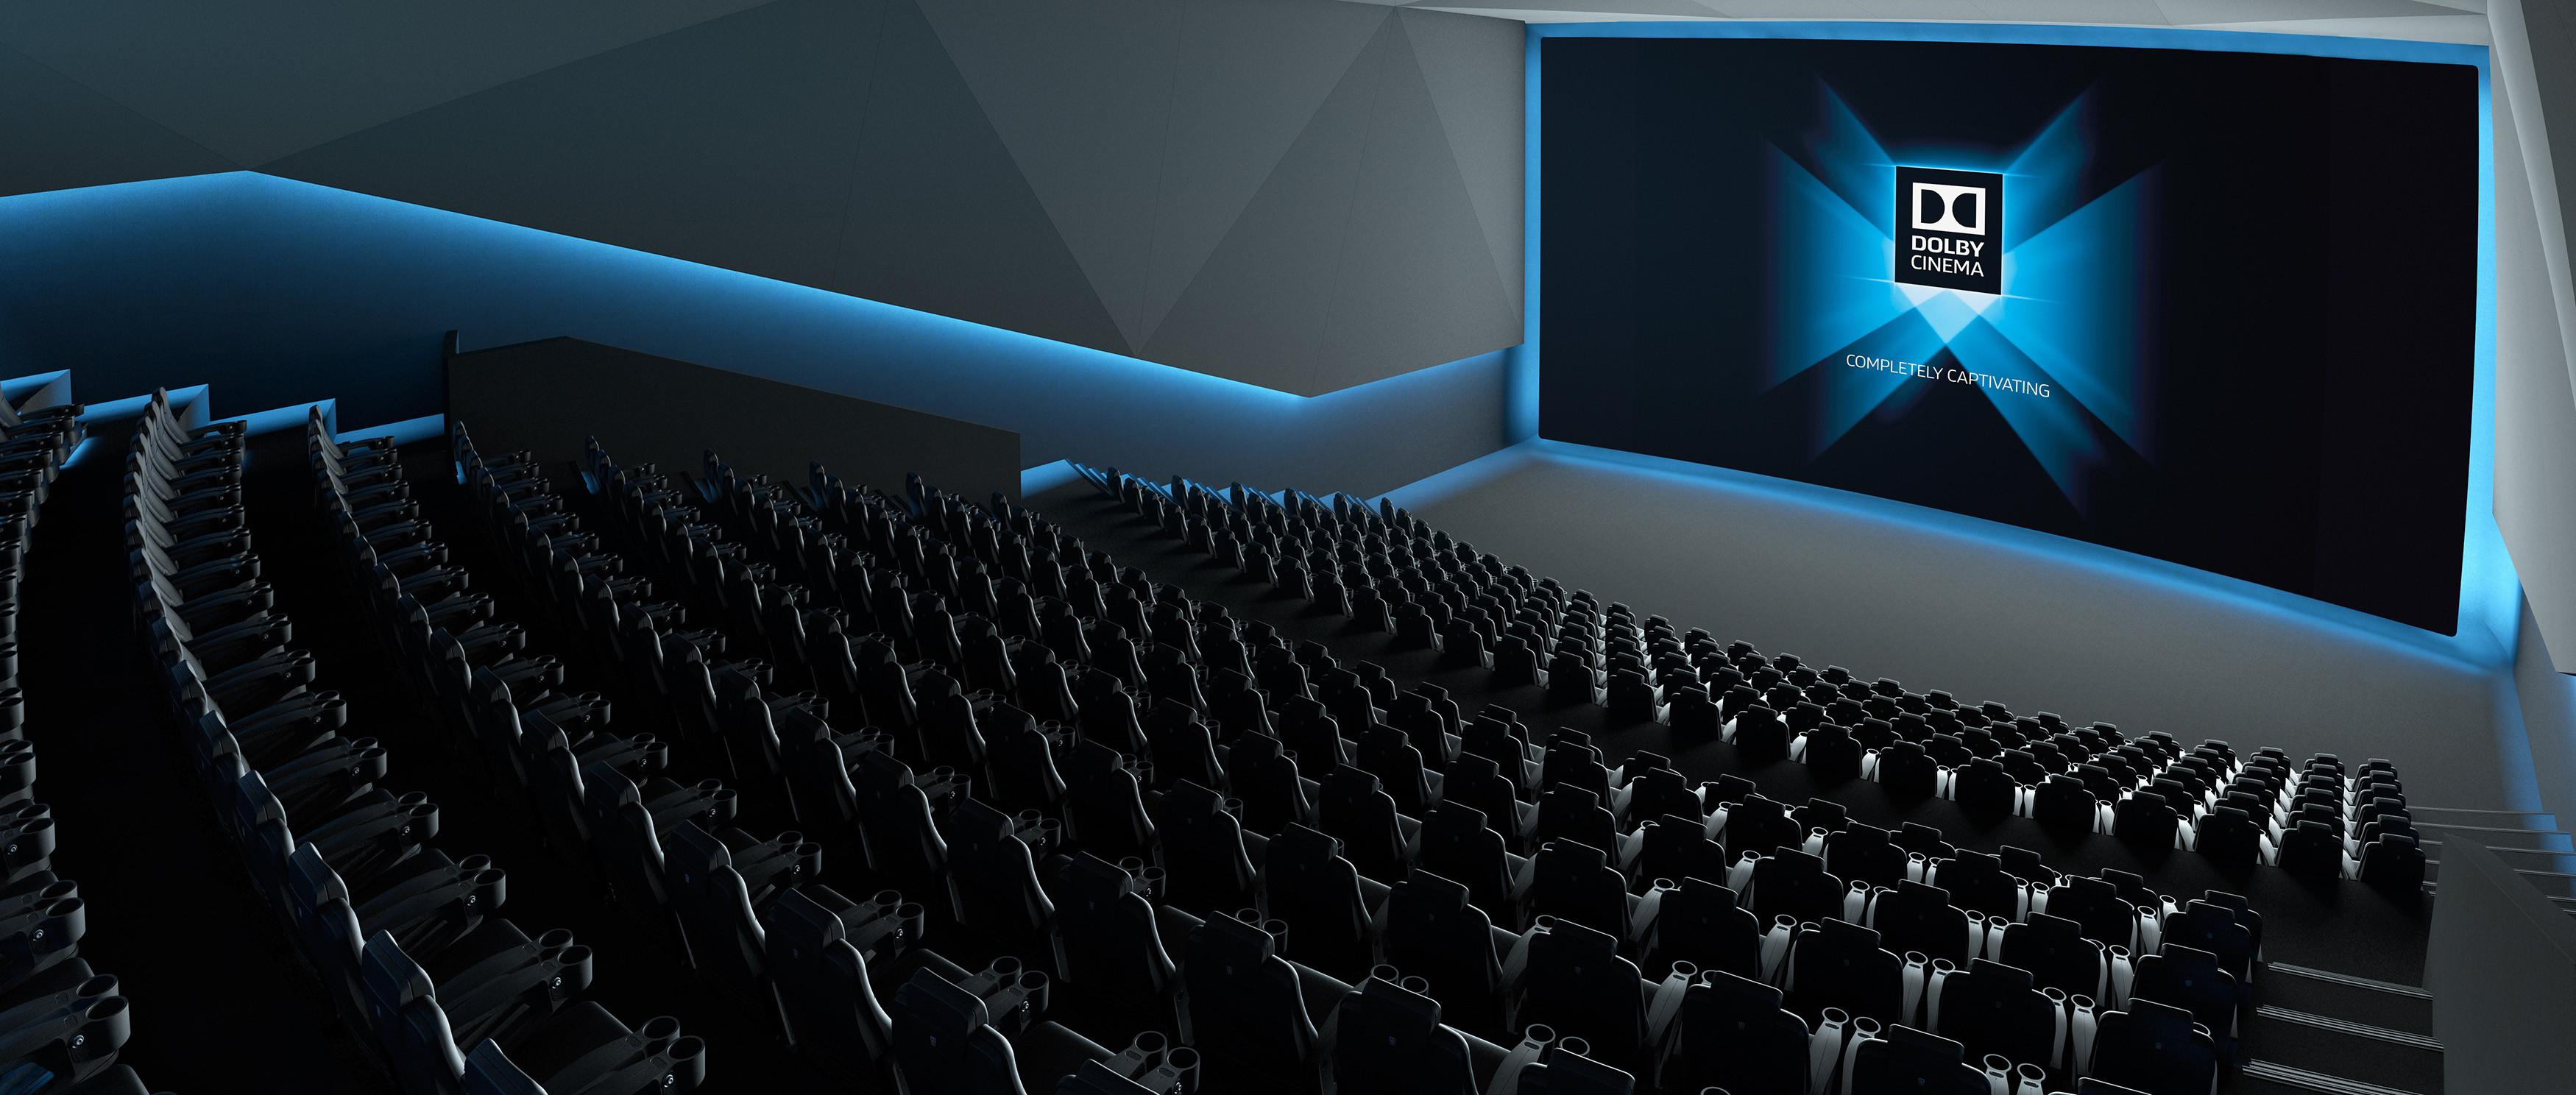 Dolby Cinema Hdr Et Projection Laser Contre L Imax Et Le